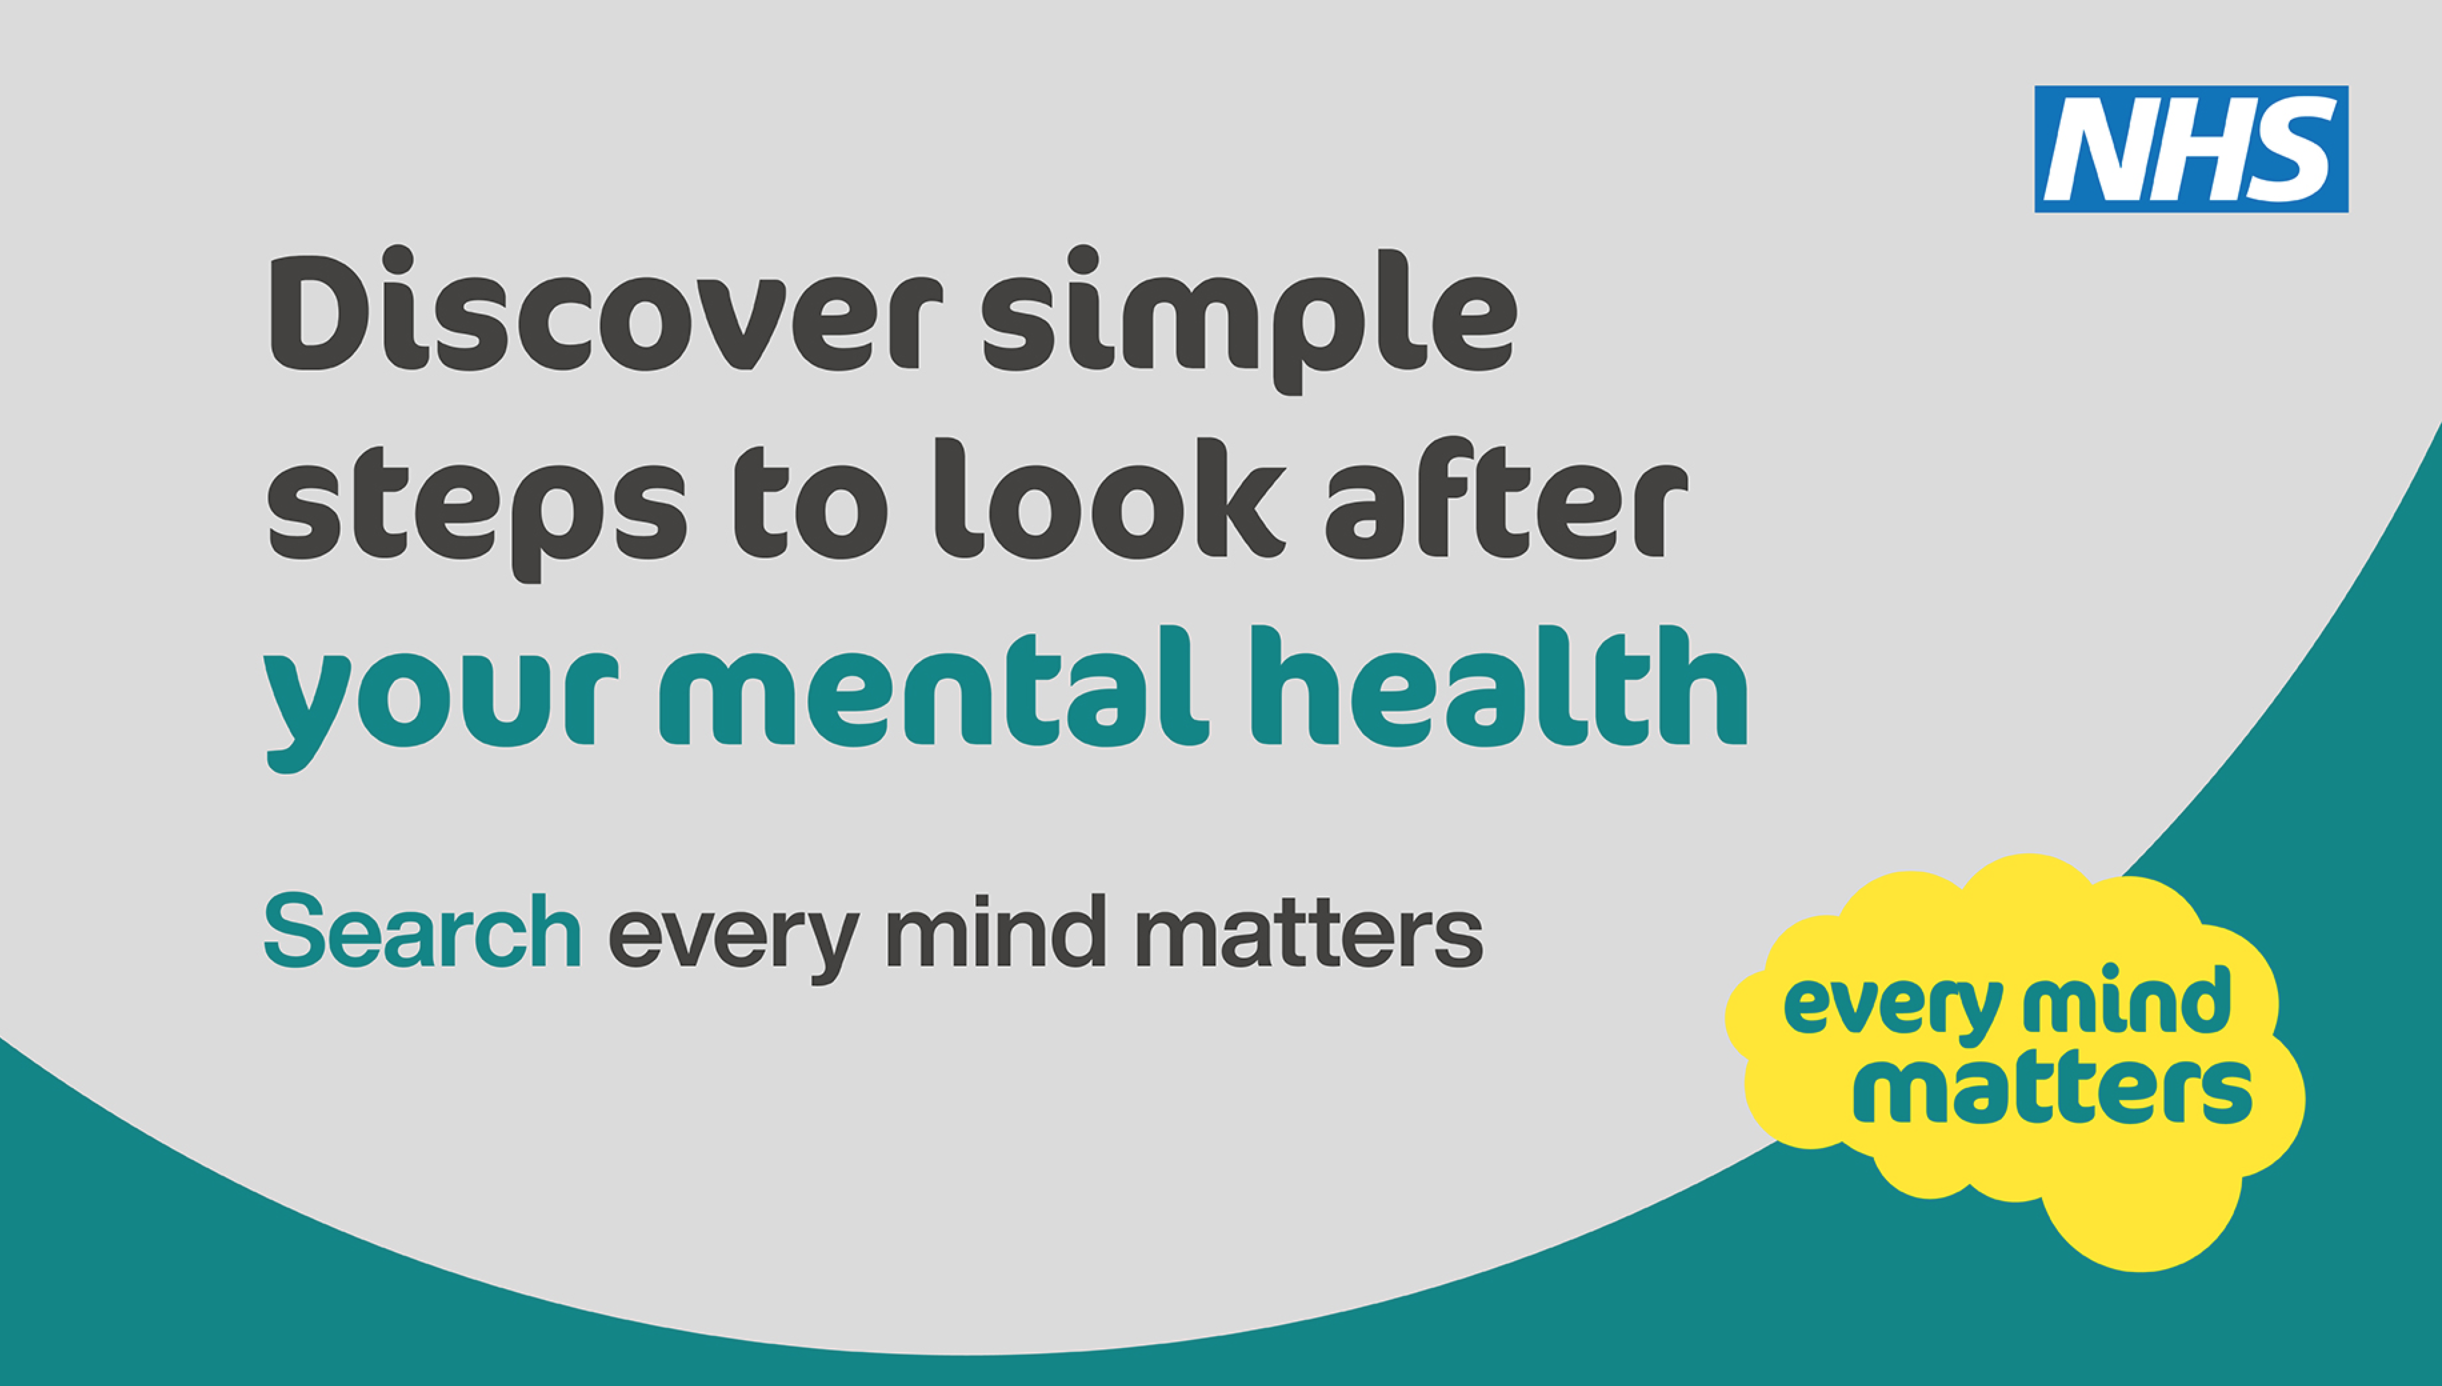 poster encouraging people to search Every Mind Matters